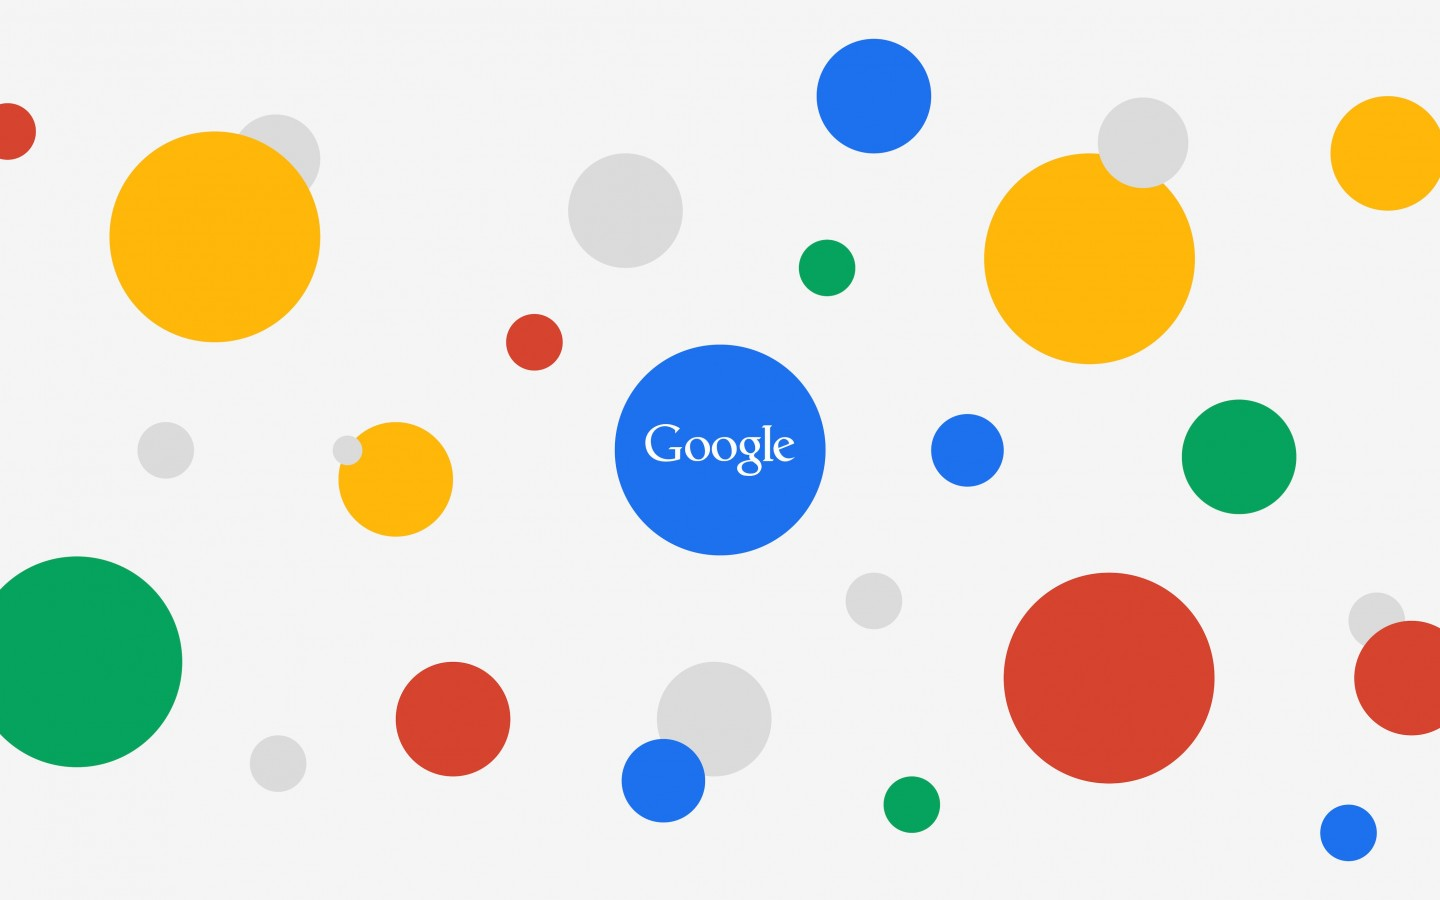 Google Circles Light Wallpaper for Desktop 1440x900